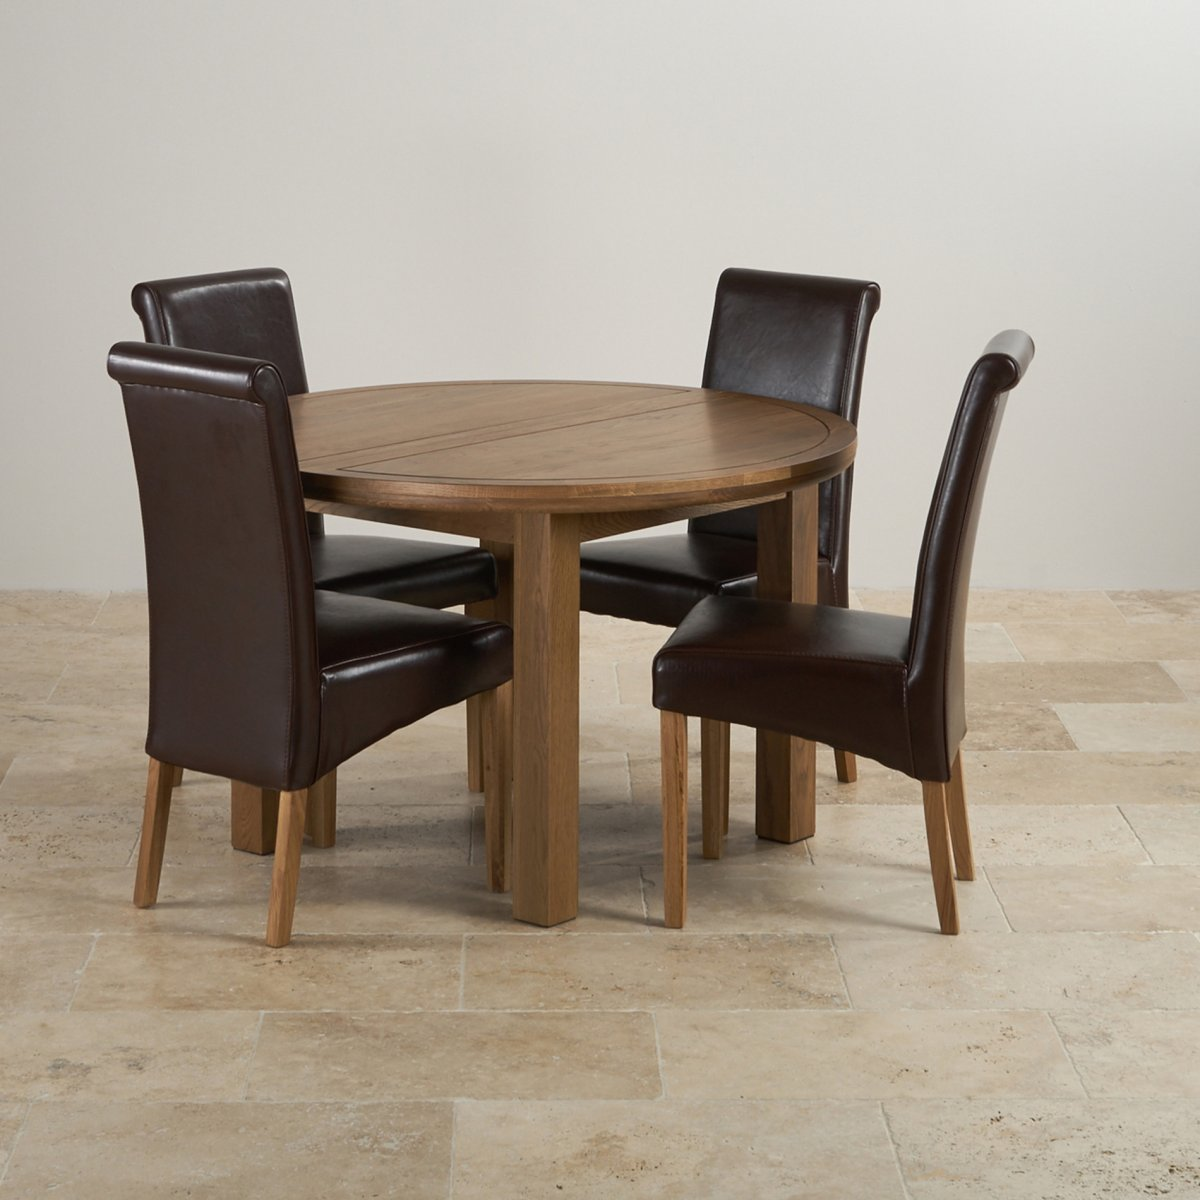 Round Breakfast Table Set: Knightsbridge Round Extending Dining Table Set: Table + 4